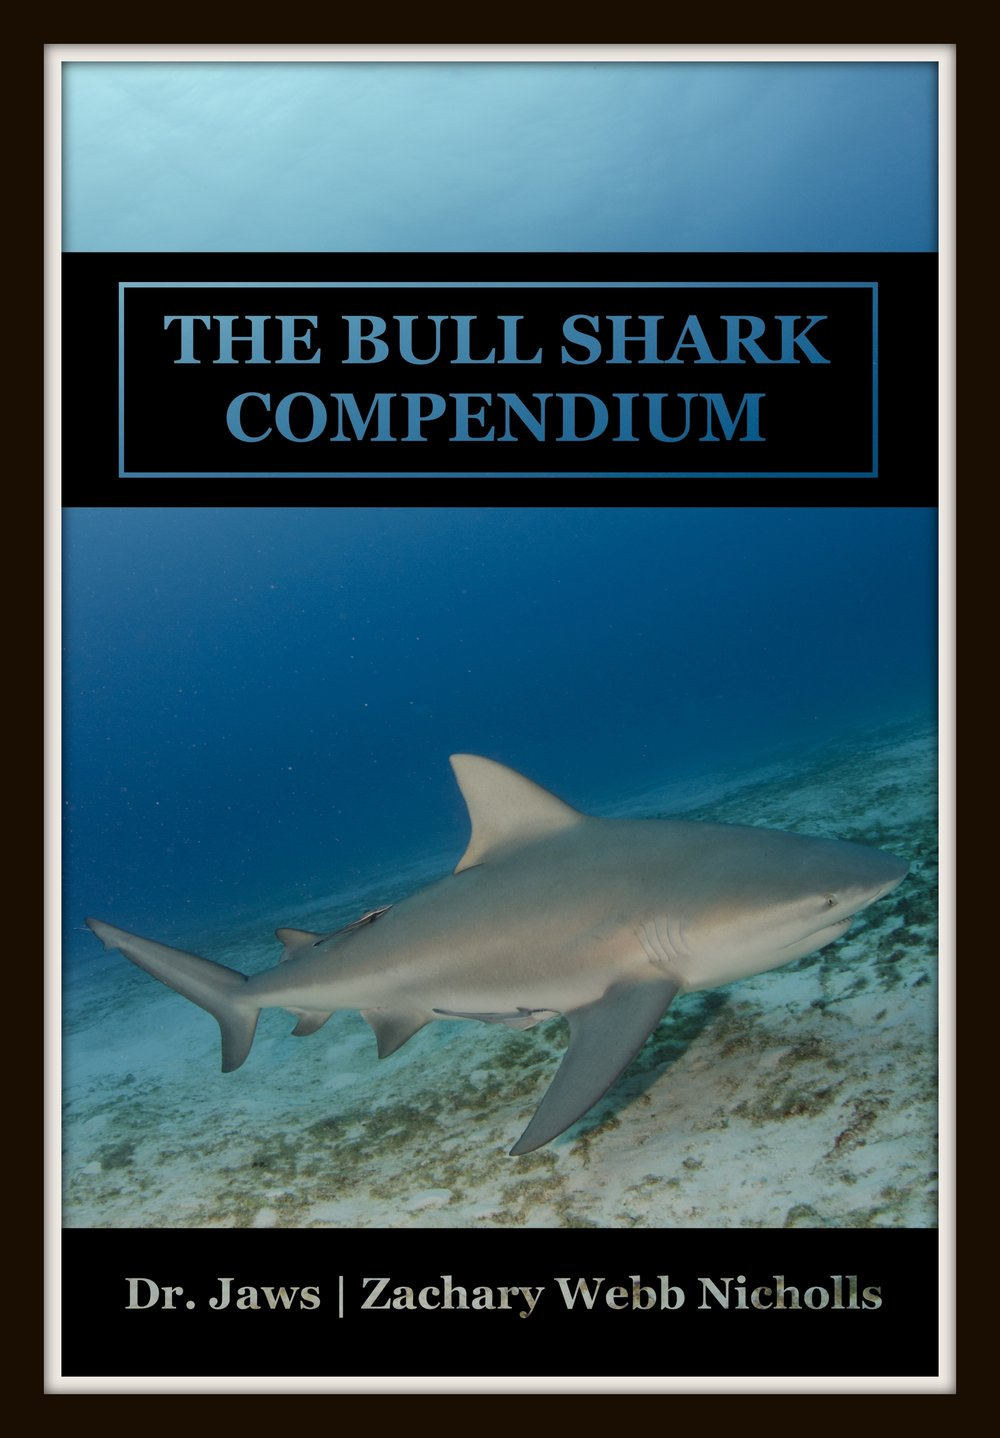 The Bull Shark Compendium